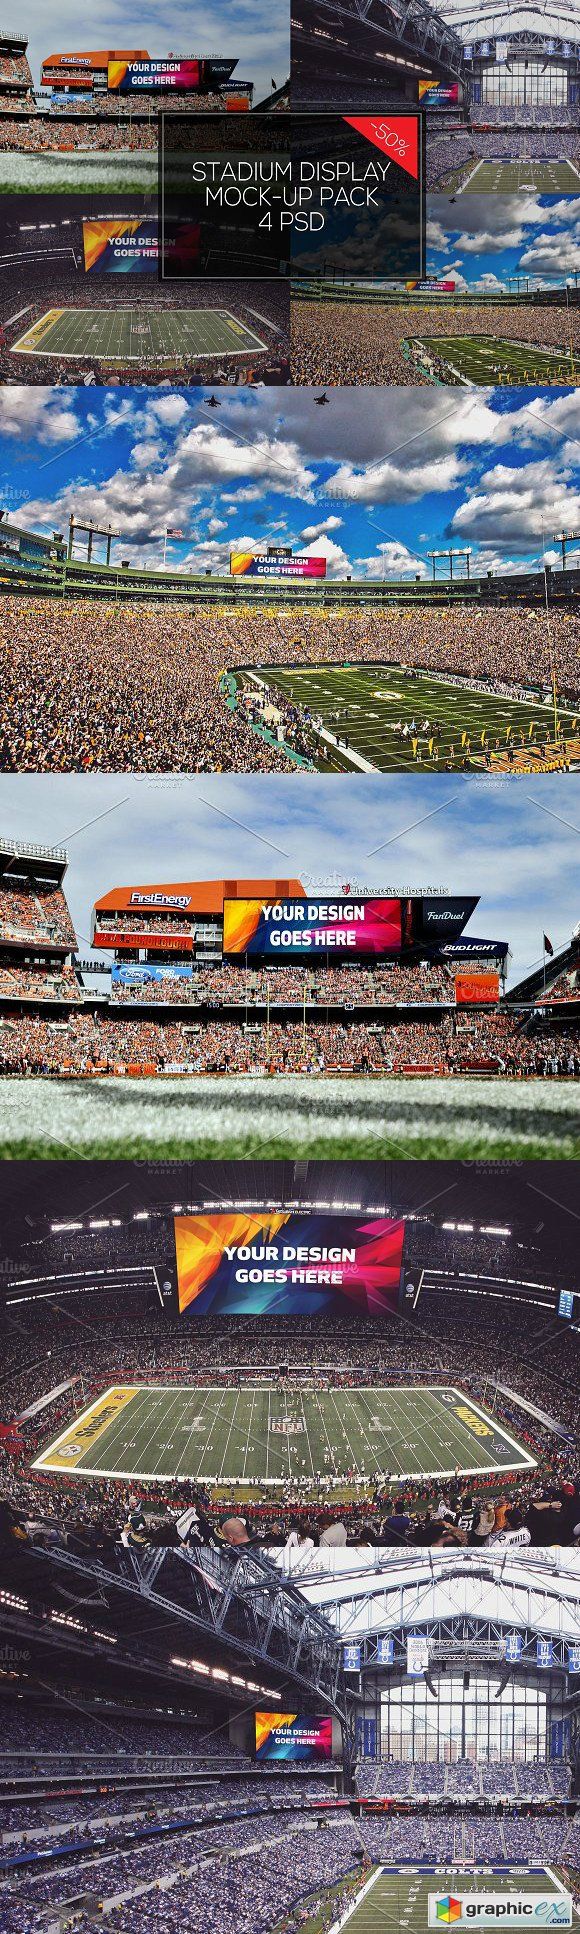 NFL Stadium Display Mock-up Pack 4